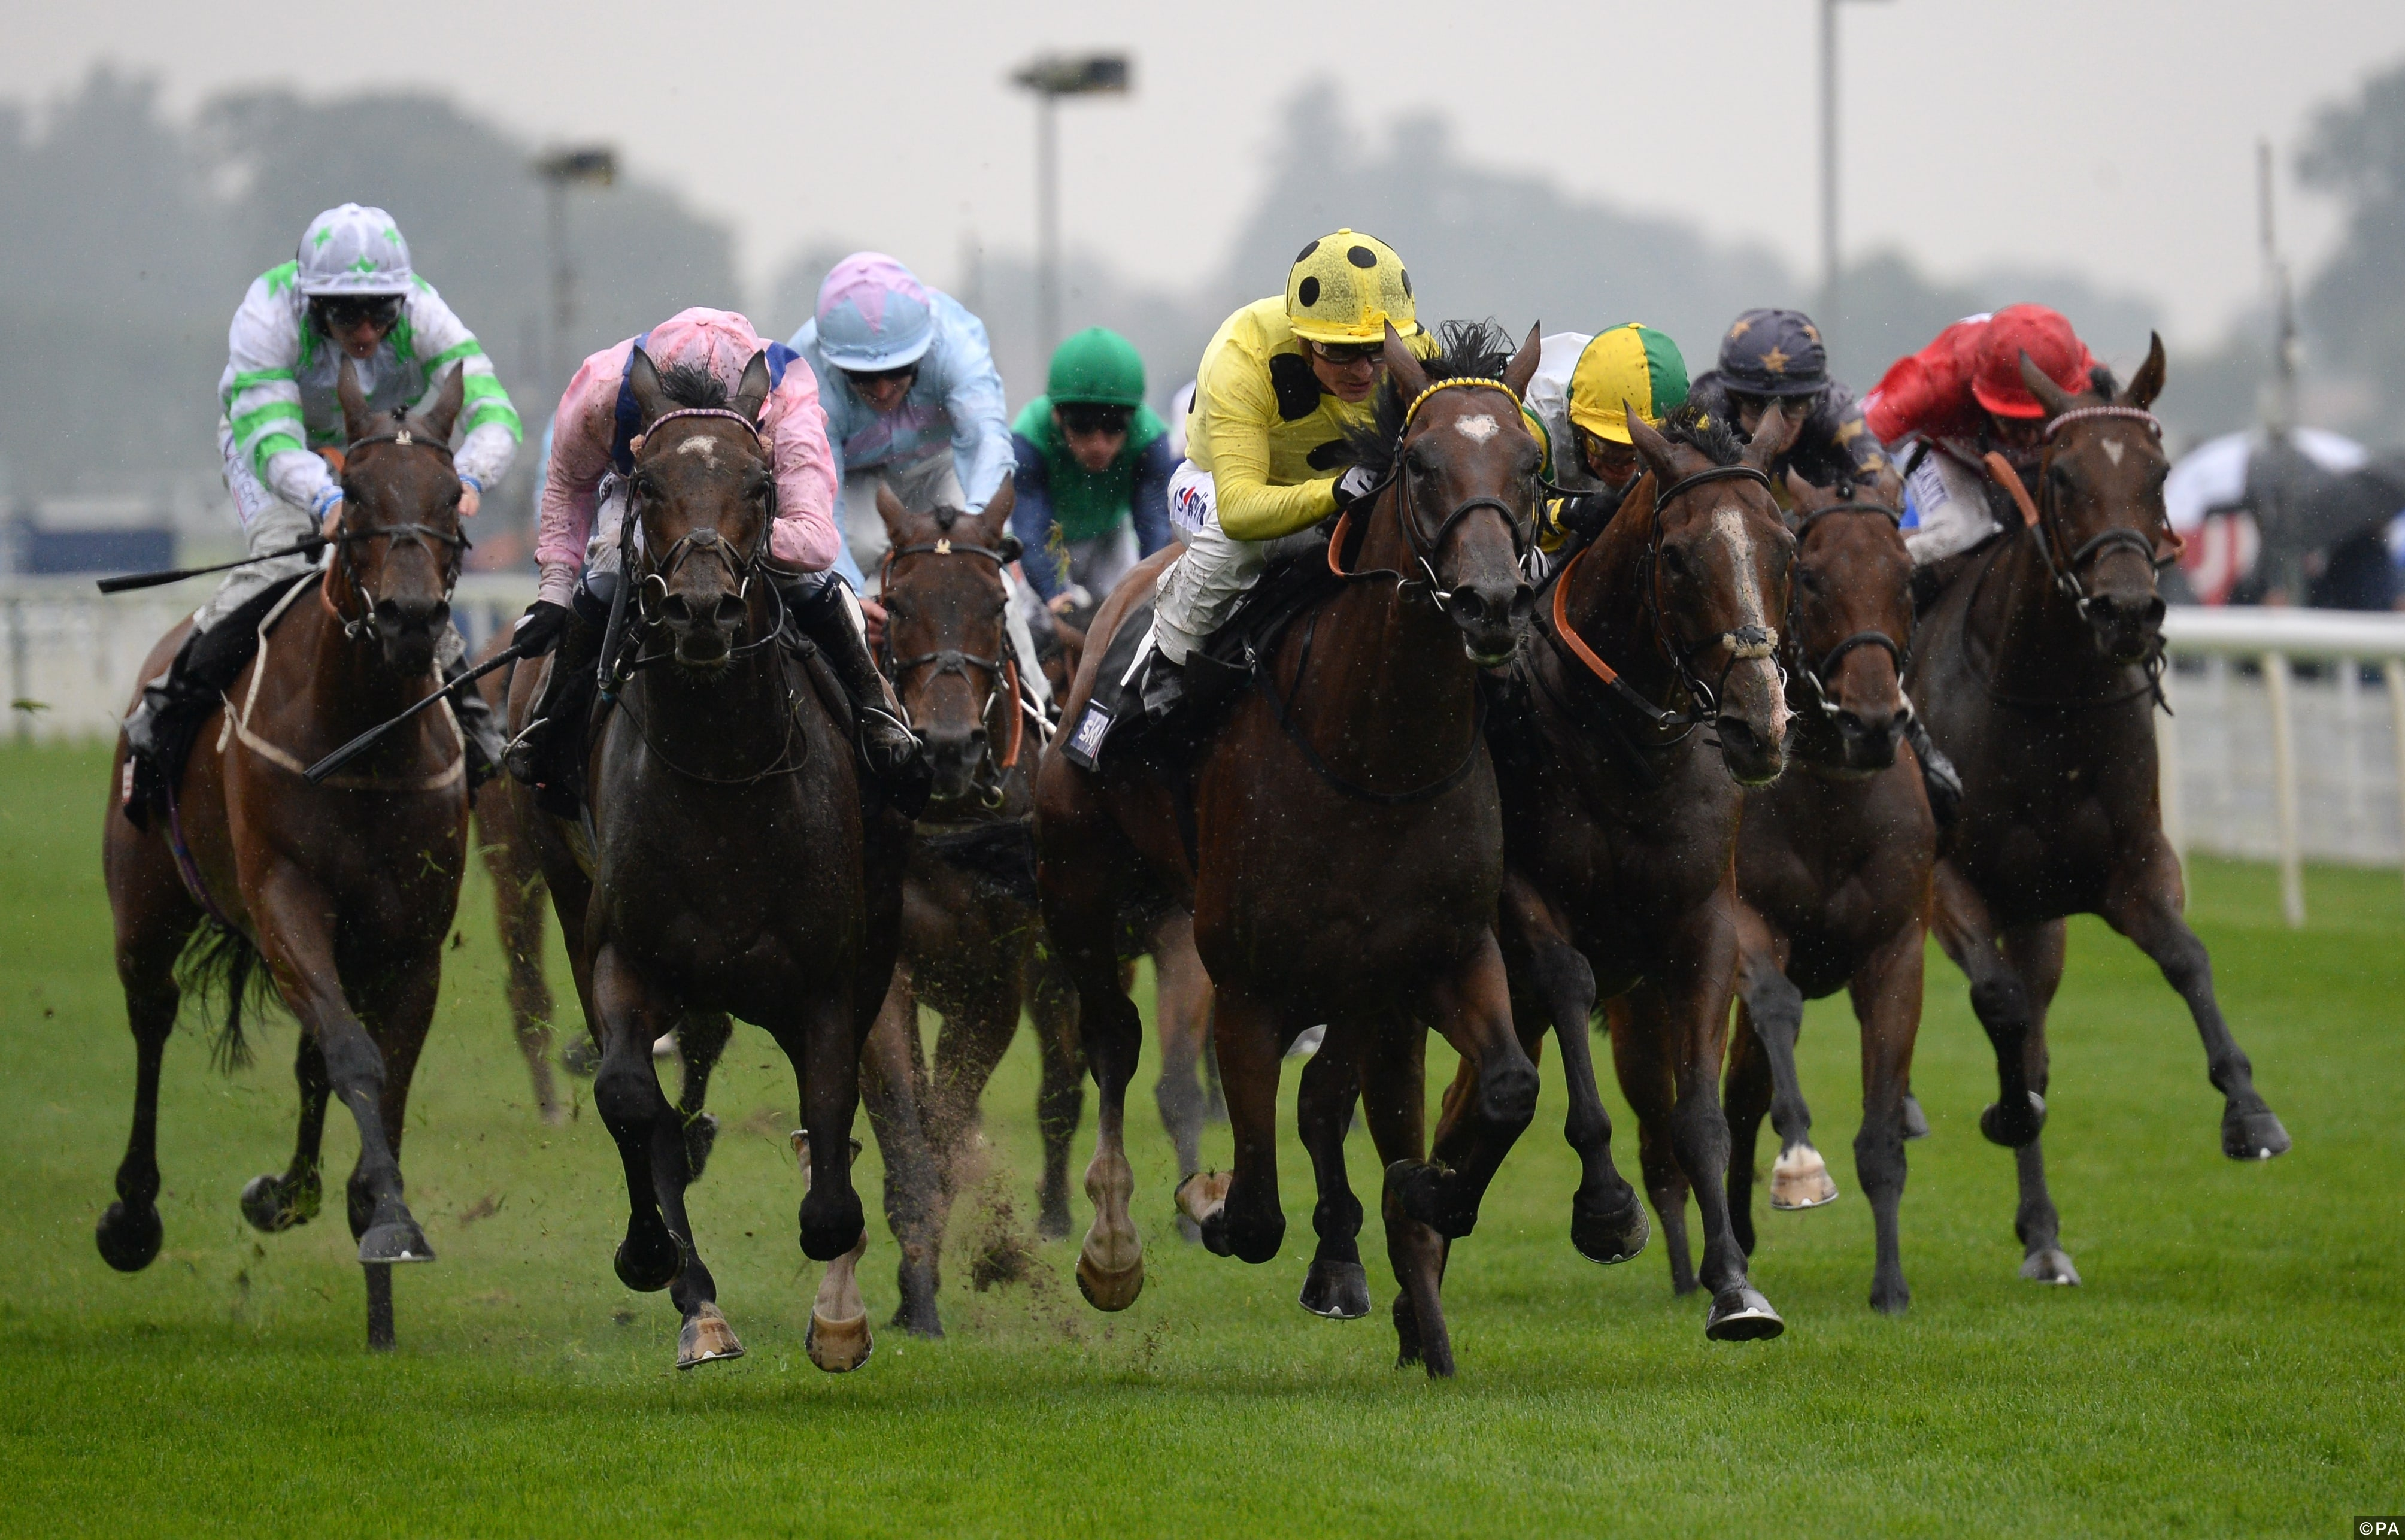 Beginners guide to horse race betting